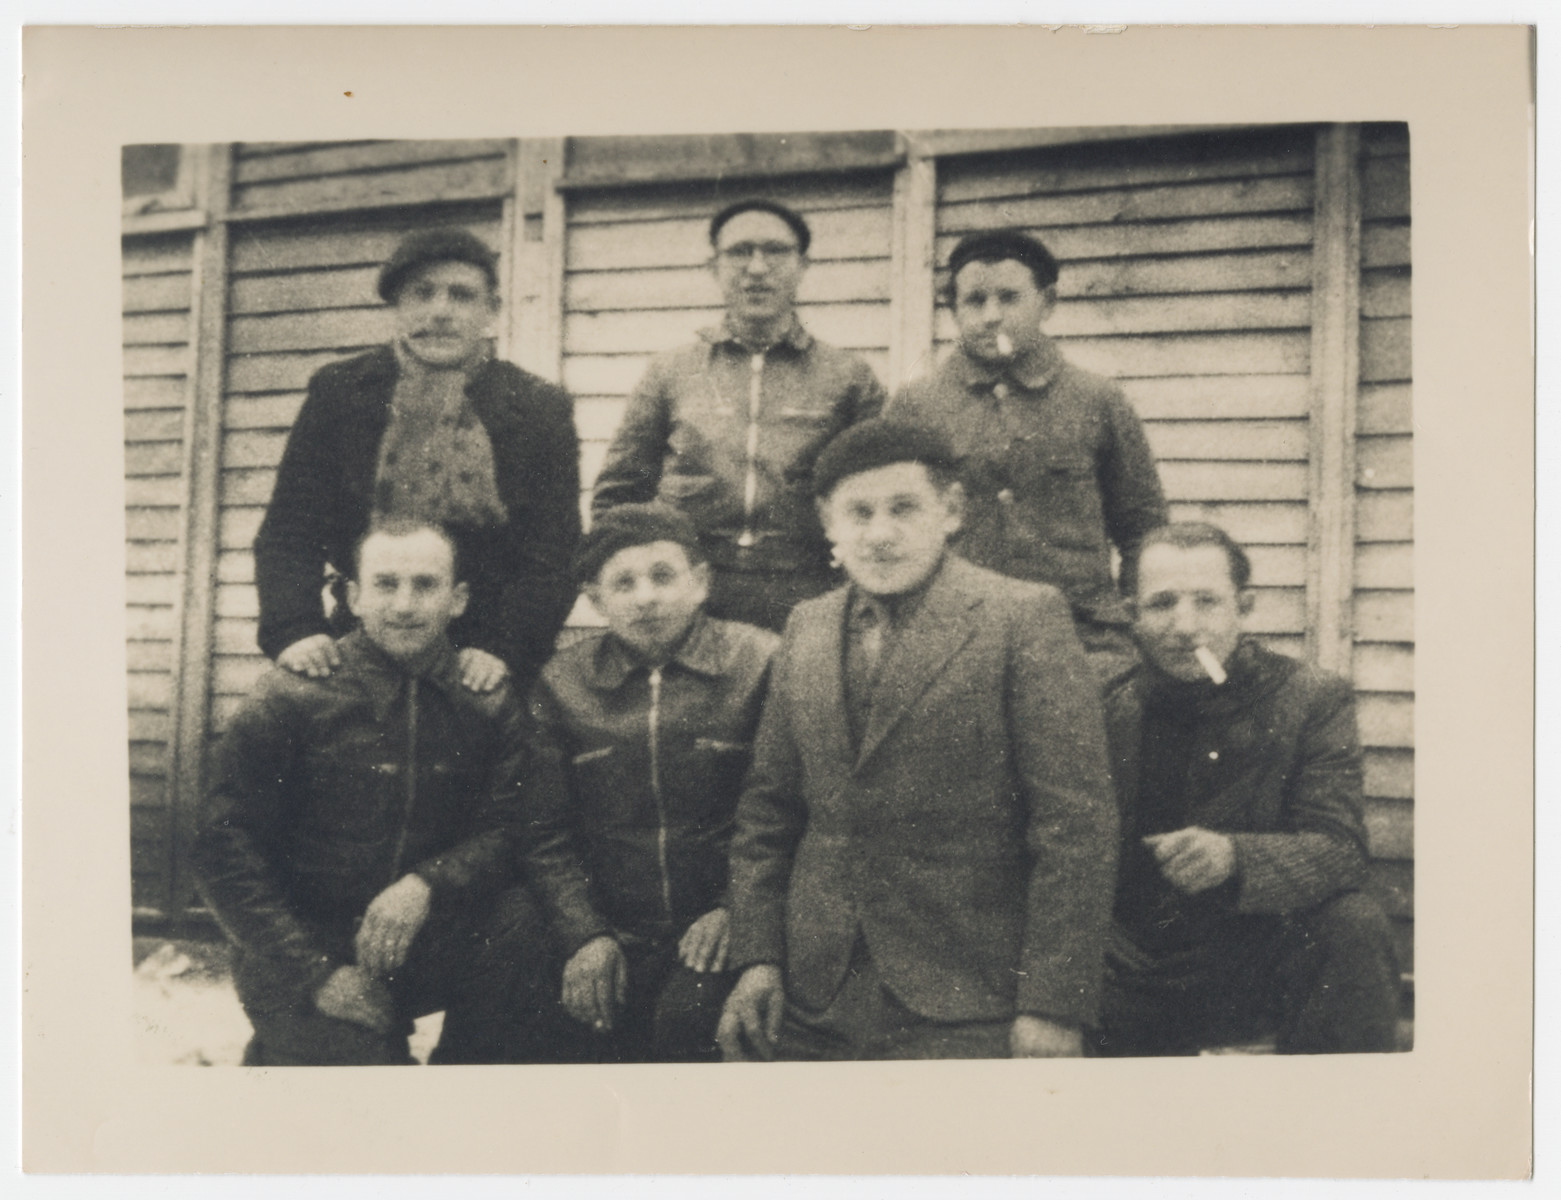 Prisoners in the Pithiviers transit camp.    The man with the cigarette is Samuel Karpik (father of the donor).